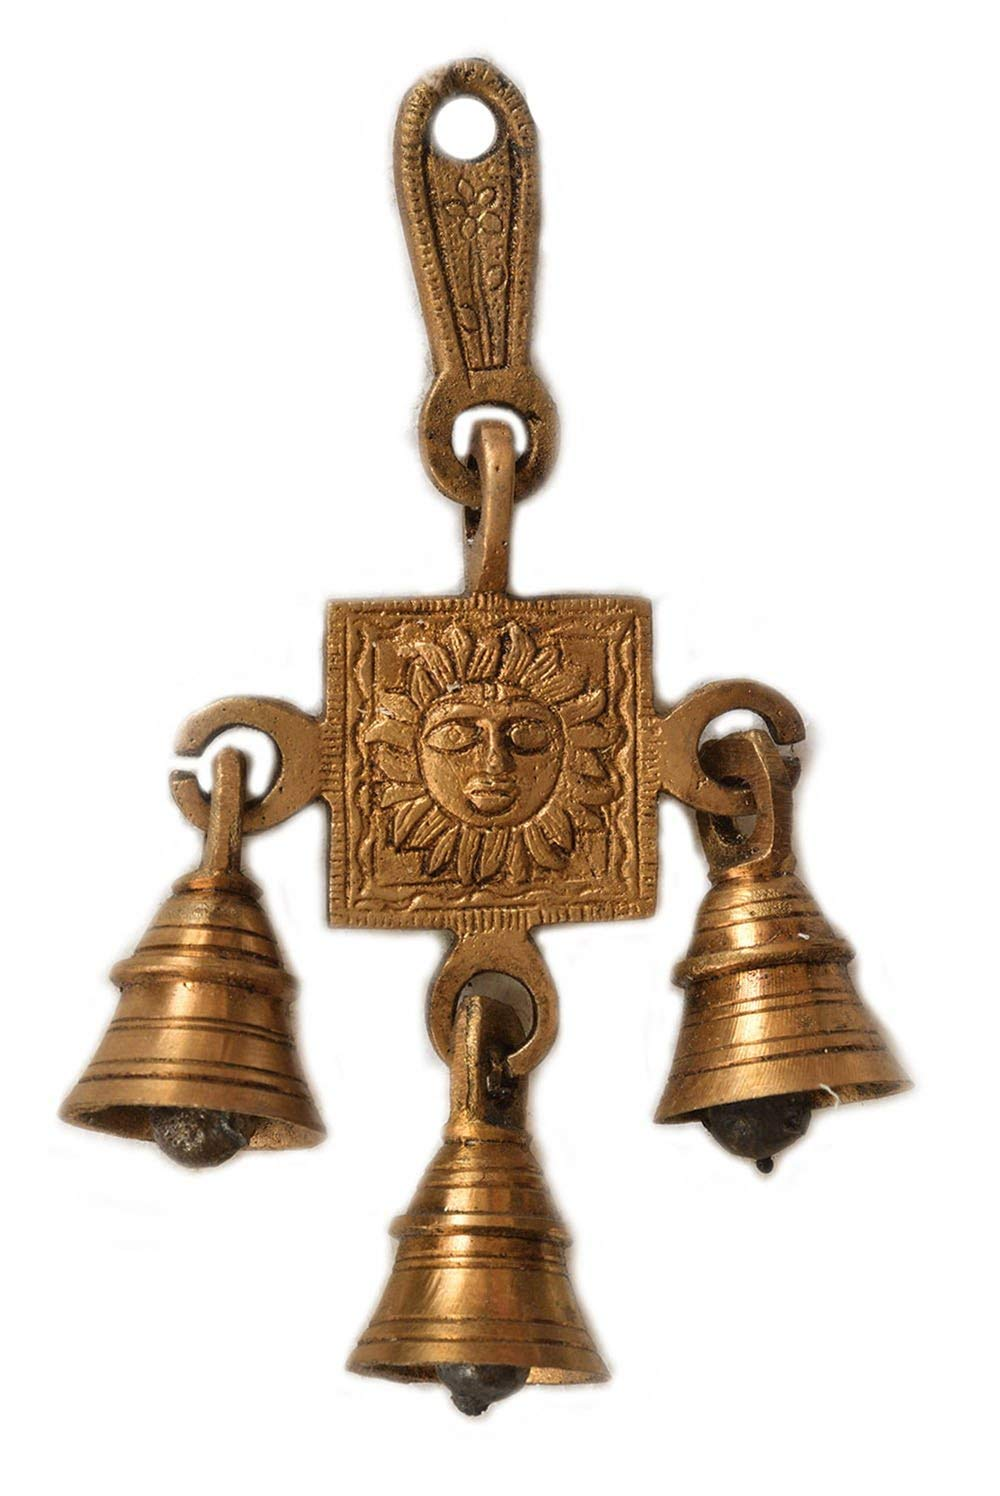 Odishabazaar Home Decor Ornament Accessories//Good Luck Charm Protection Interior Wall Hanging. obh-4